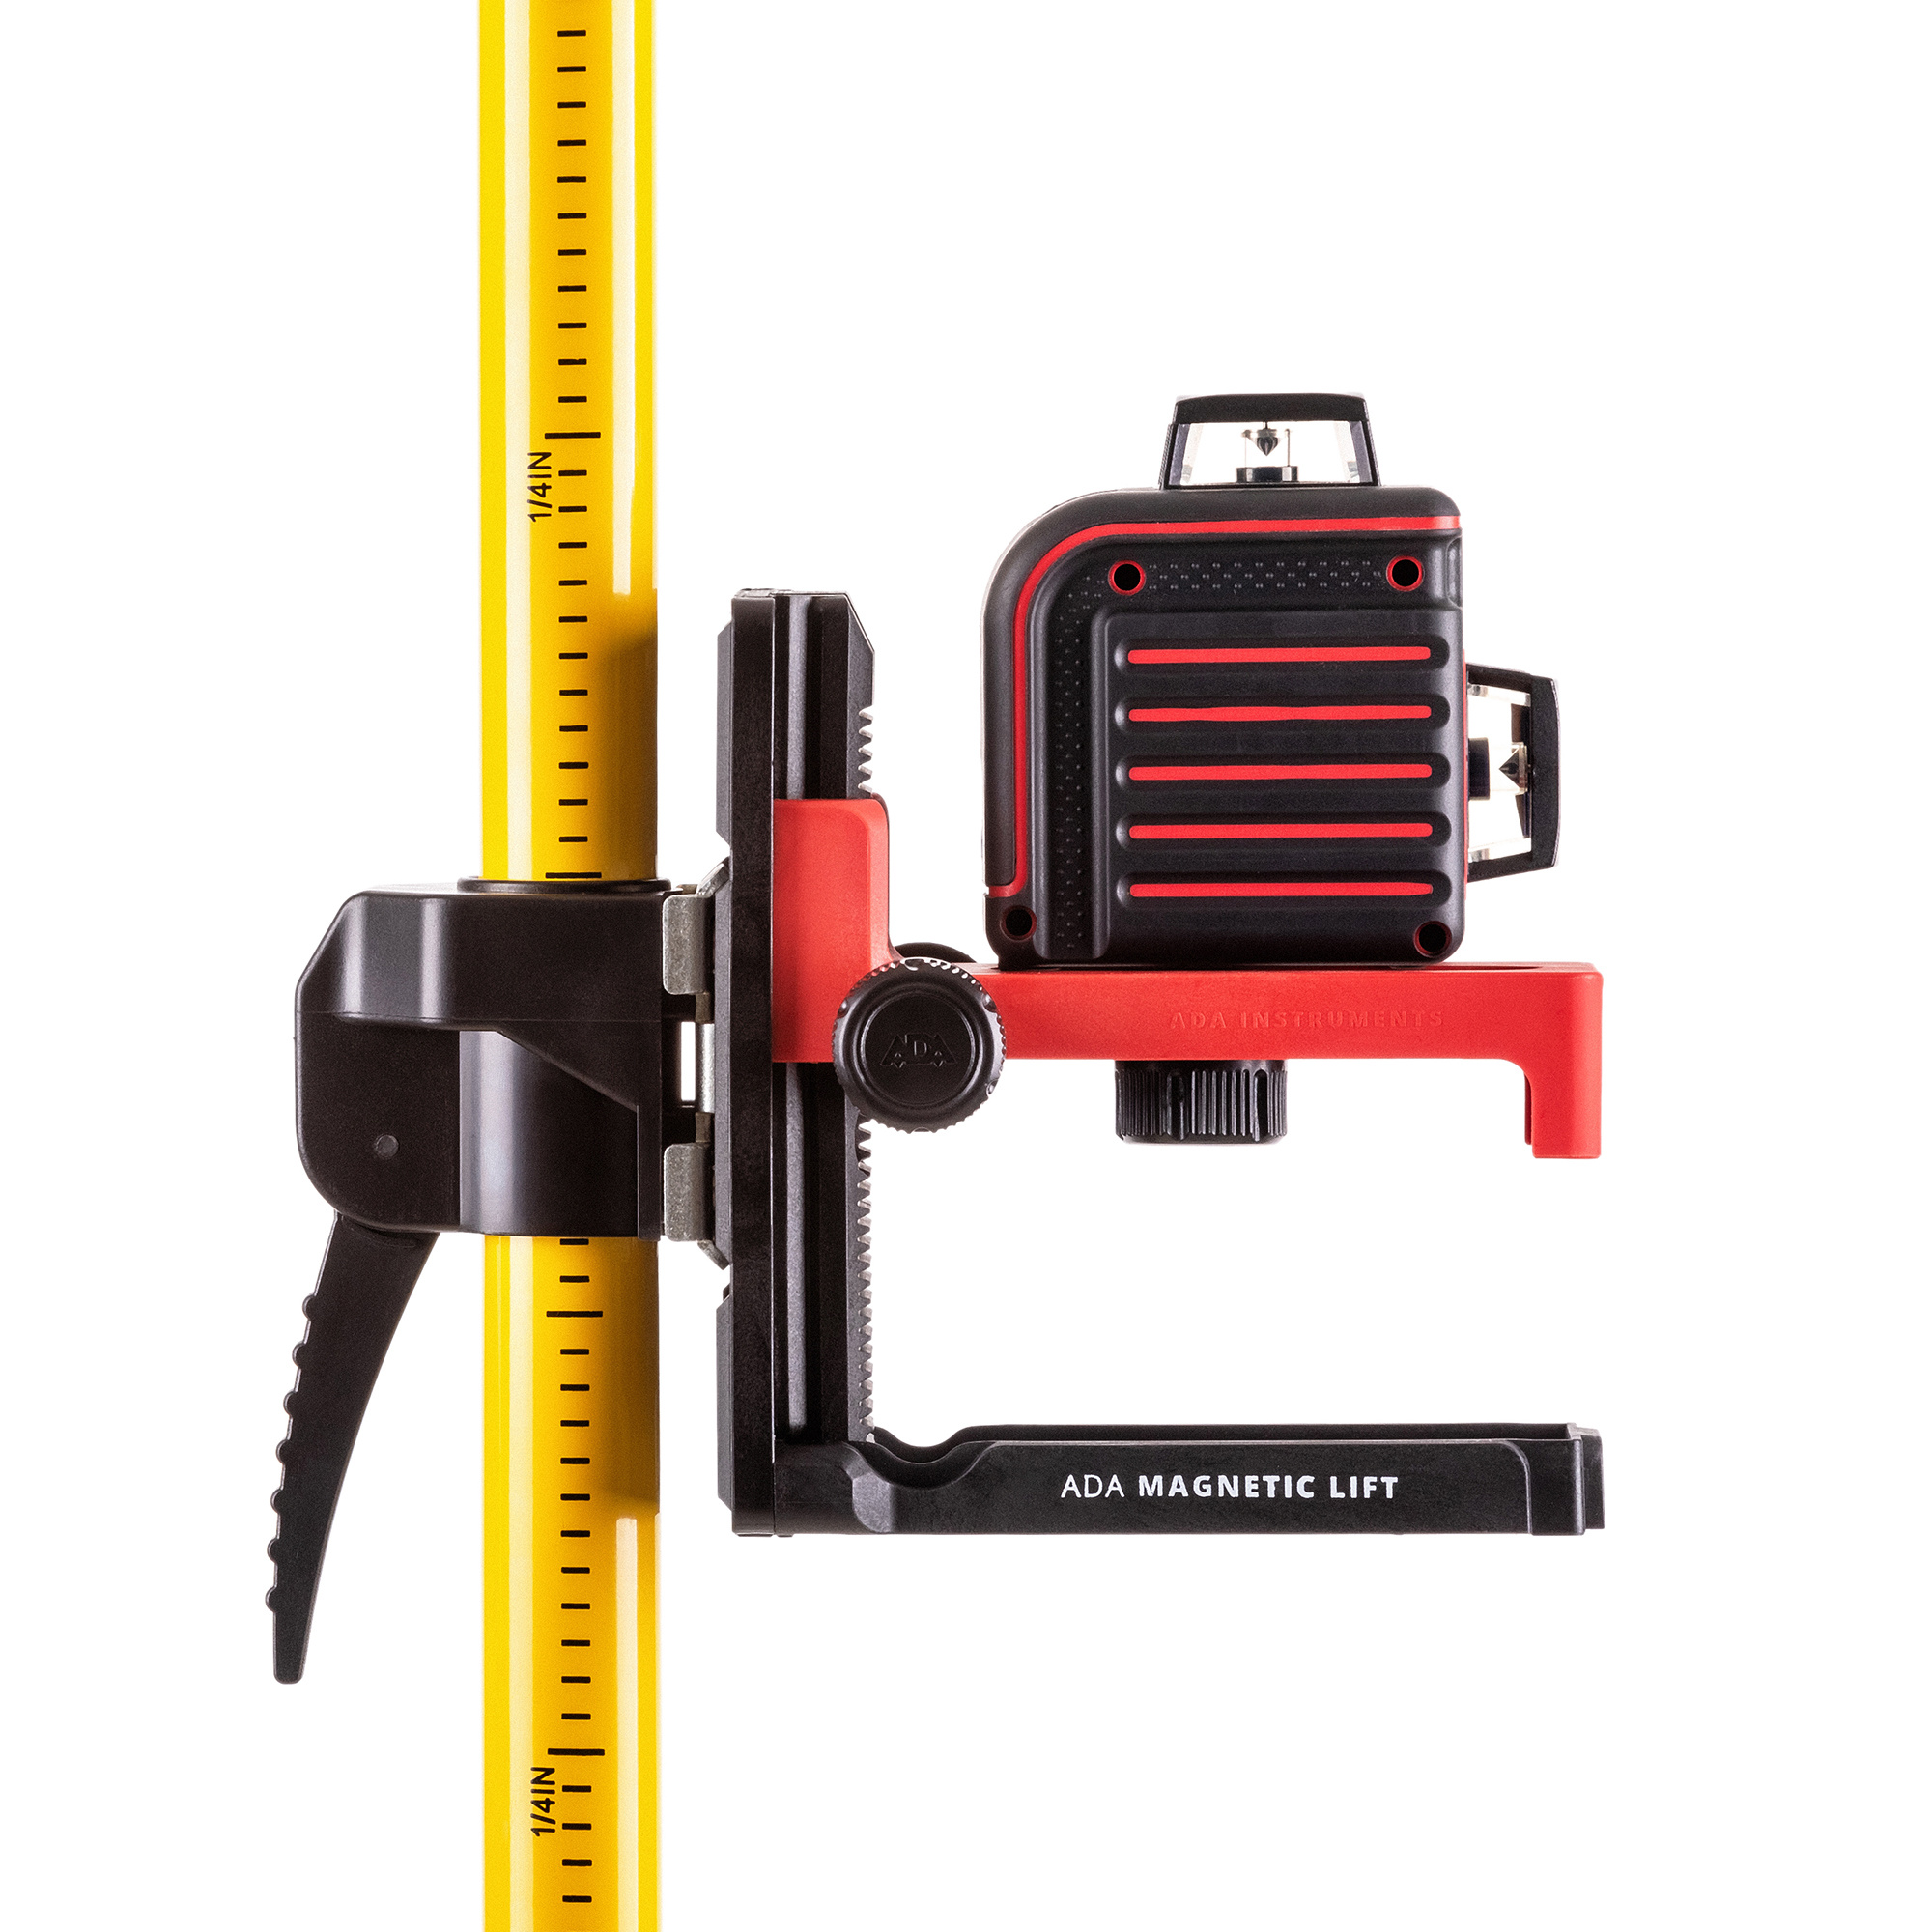 ADA  SilverPlus pole stand up to 360 cm with magnetically adjustable wallmount